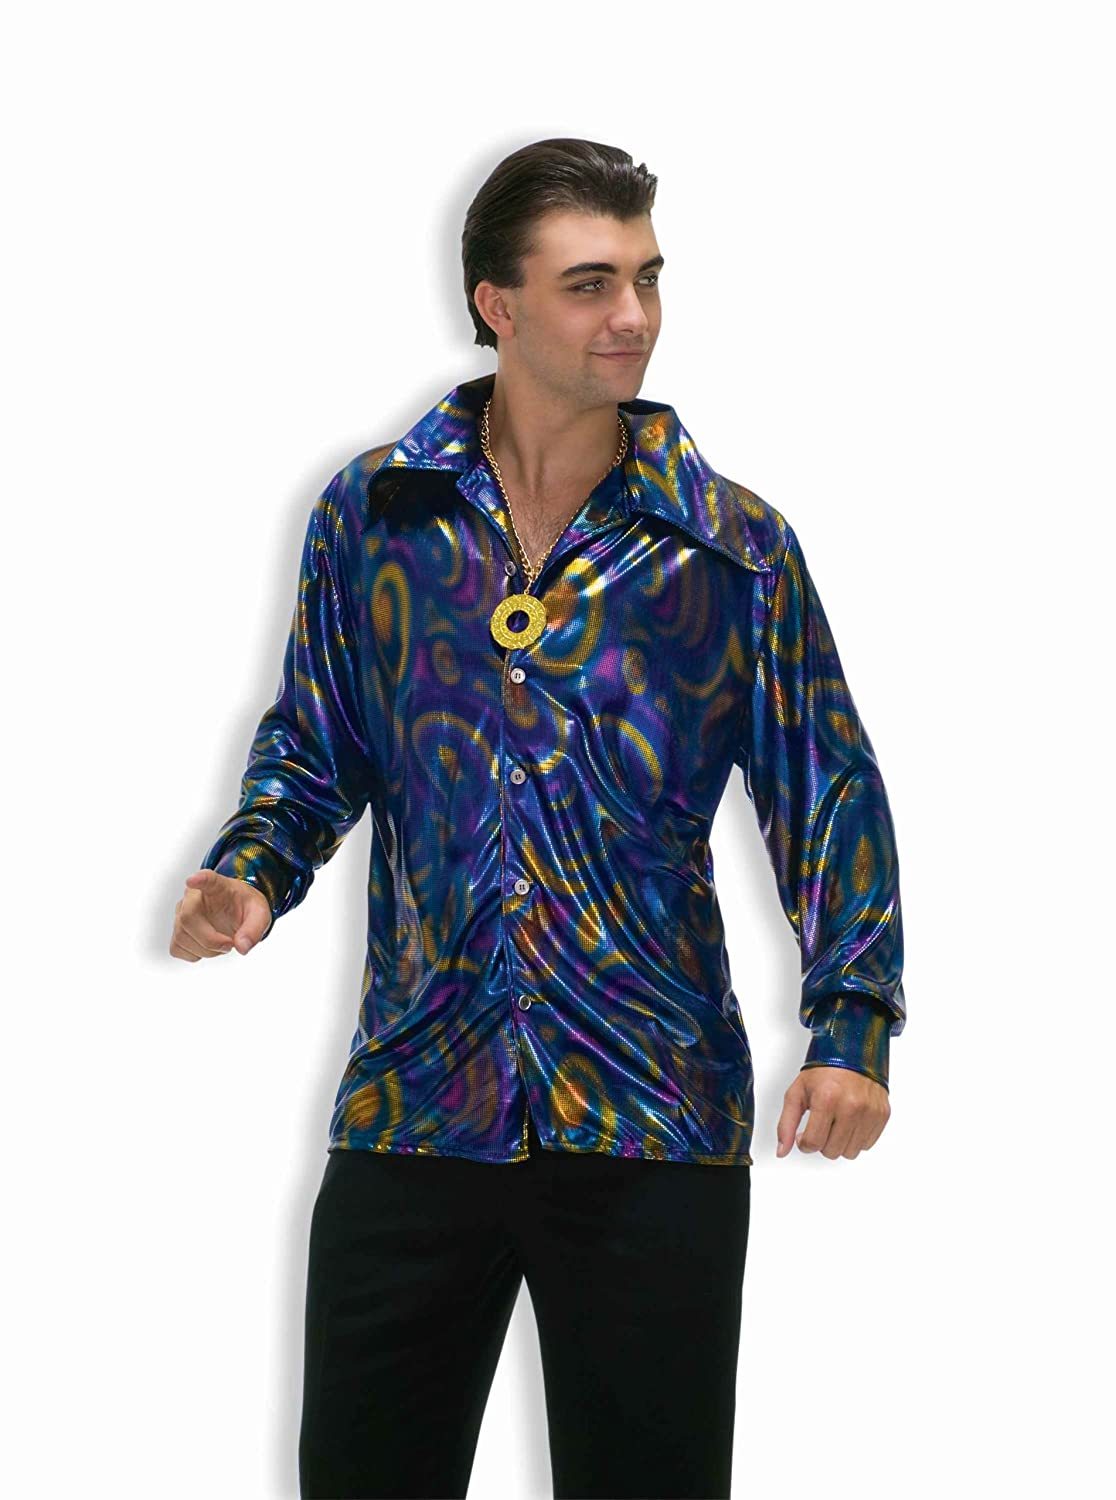 Retro Clothing for Men | Vintage Men's Fashion Forum Novelties Mens 70s Disco Dynamite Dude Costume Shirt $56.24 AT vintagedancer.com